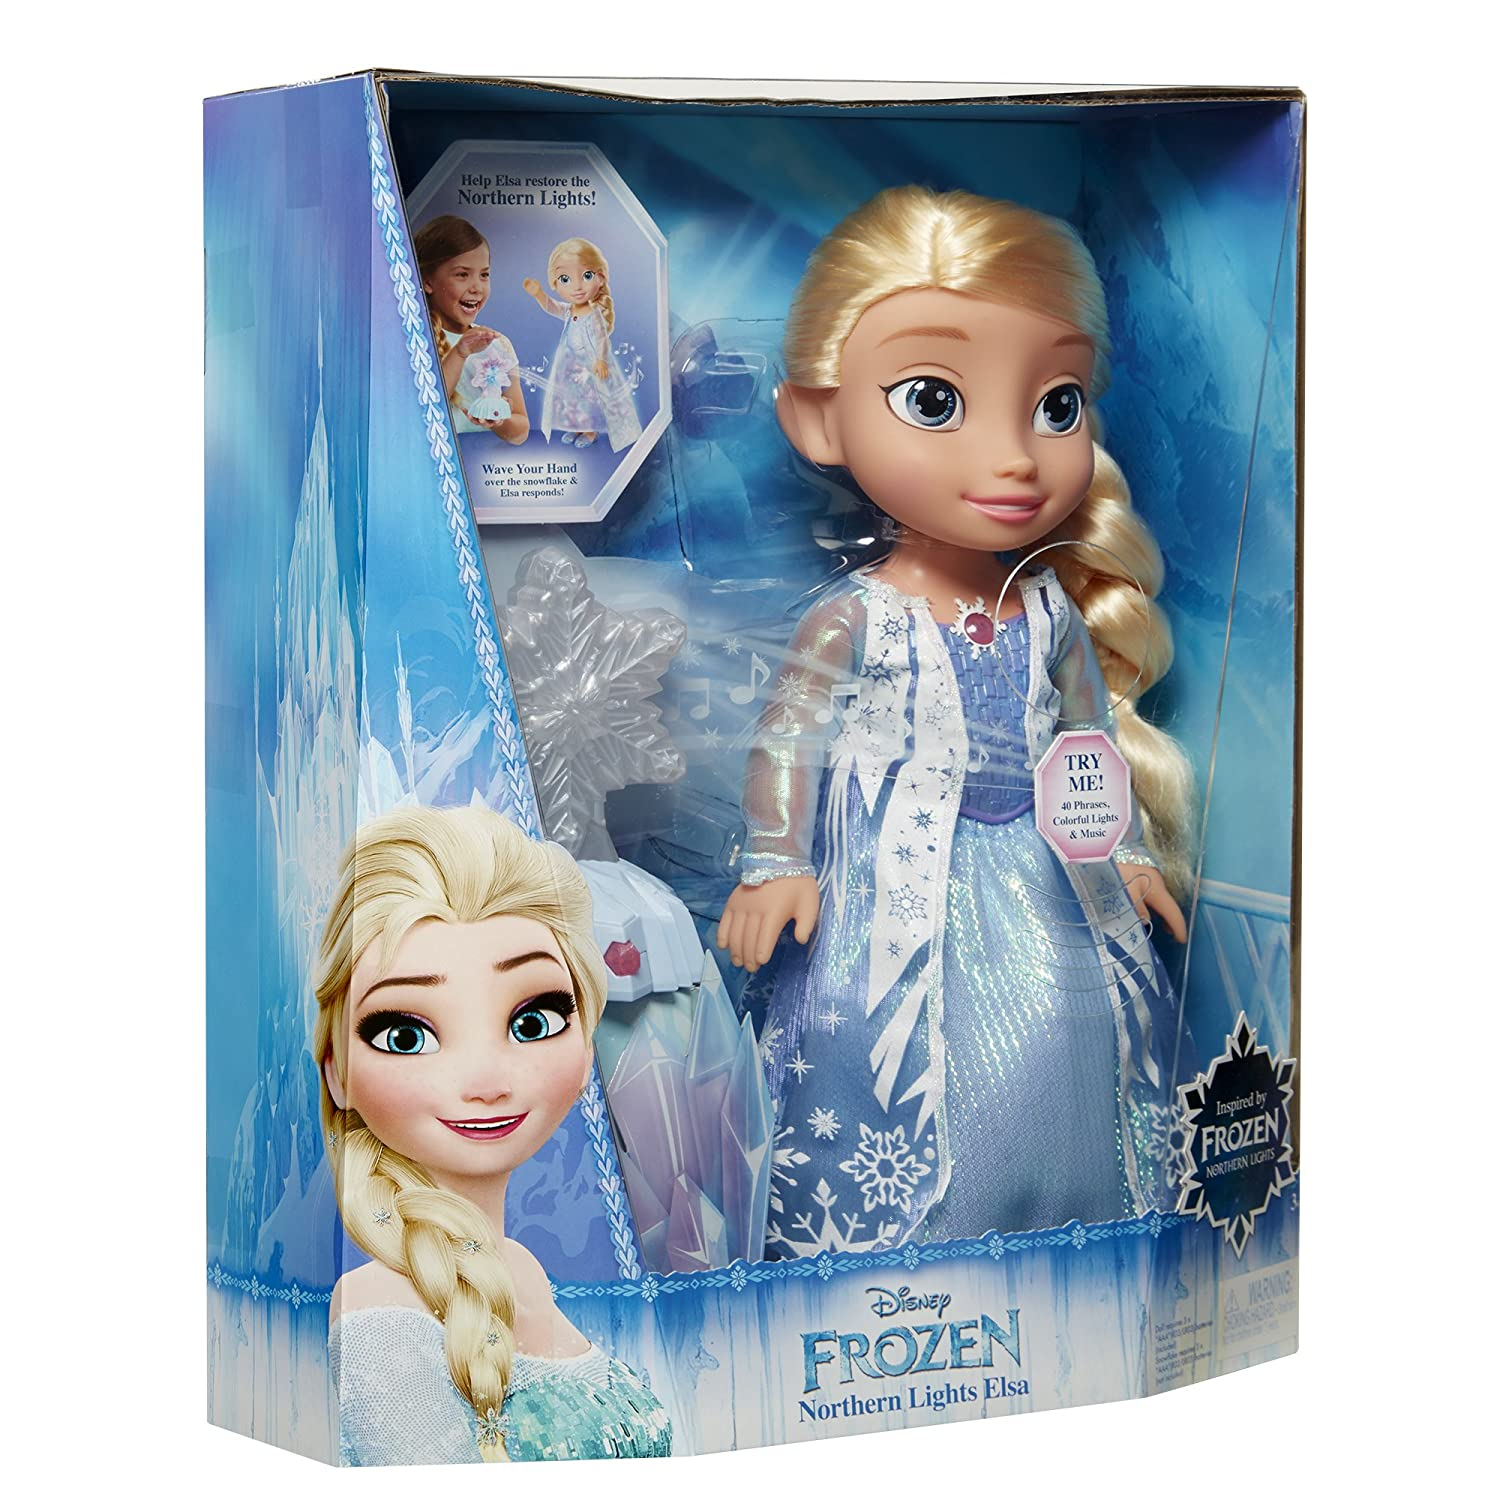 81l29PLCh8L._SL1500_ amazon com frozen northern lights elsa doll toys & games AC Electrical Wiring Diagrams at virtualis.co